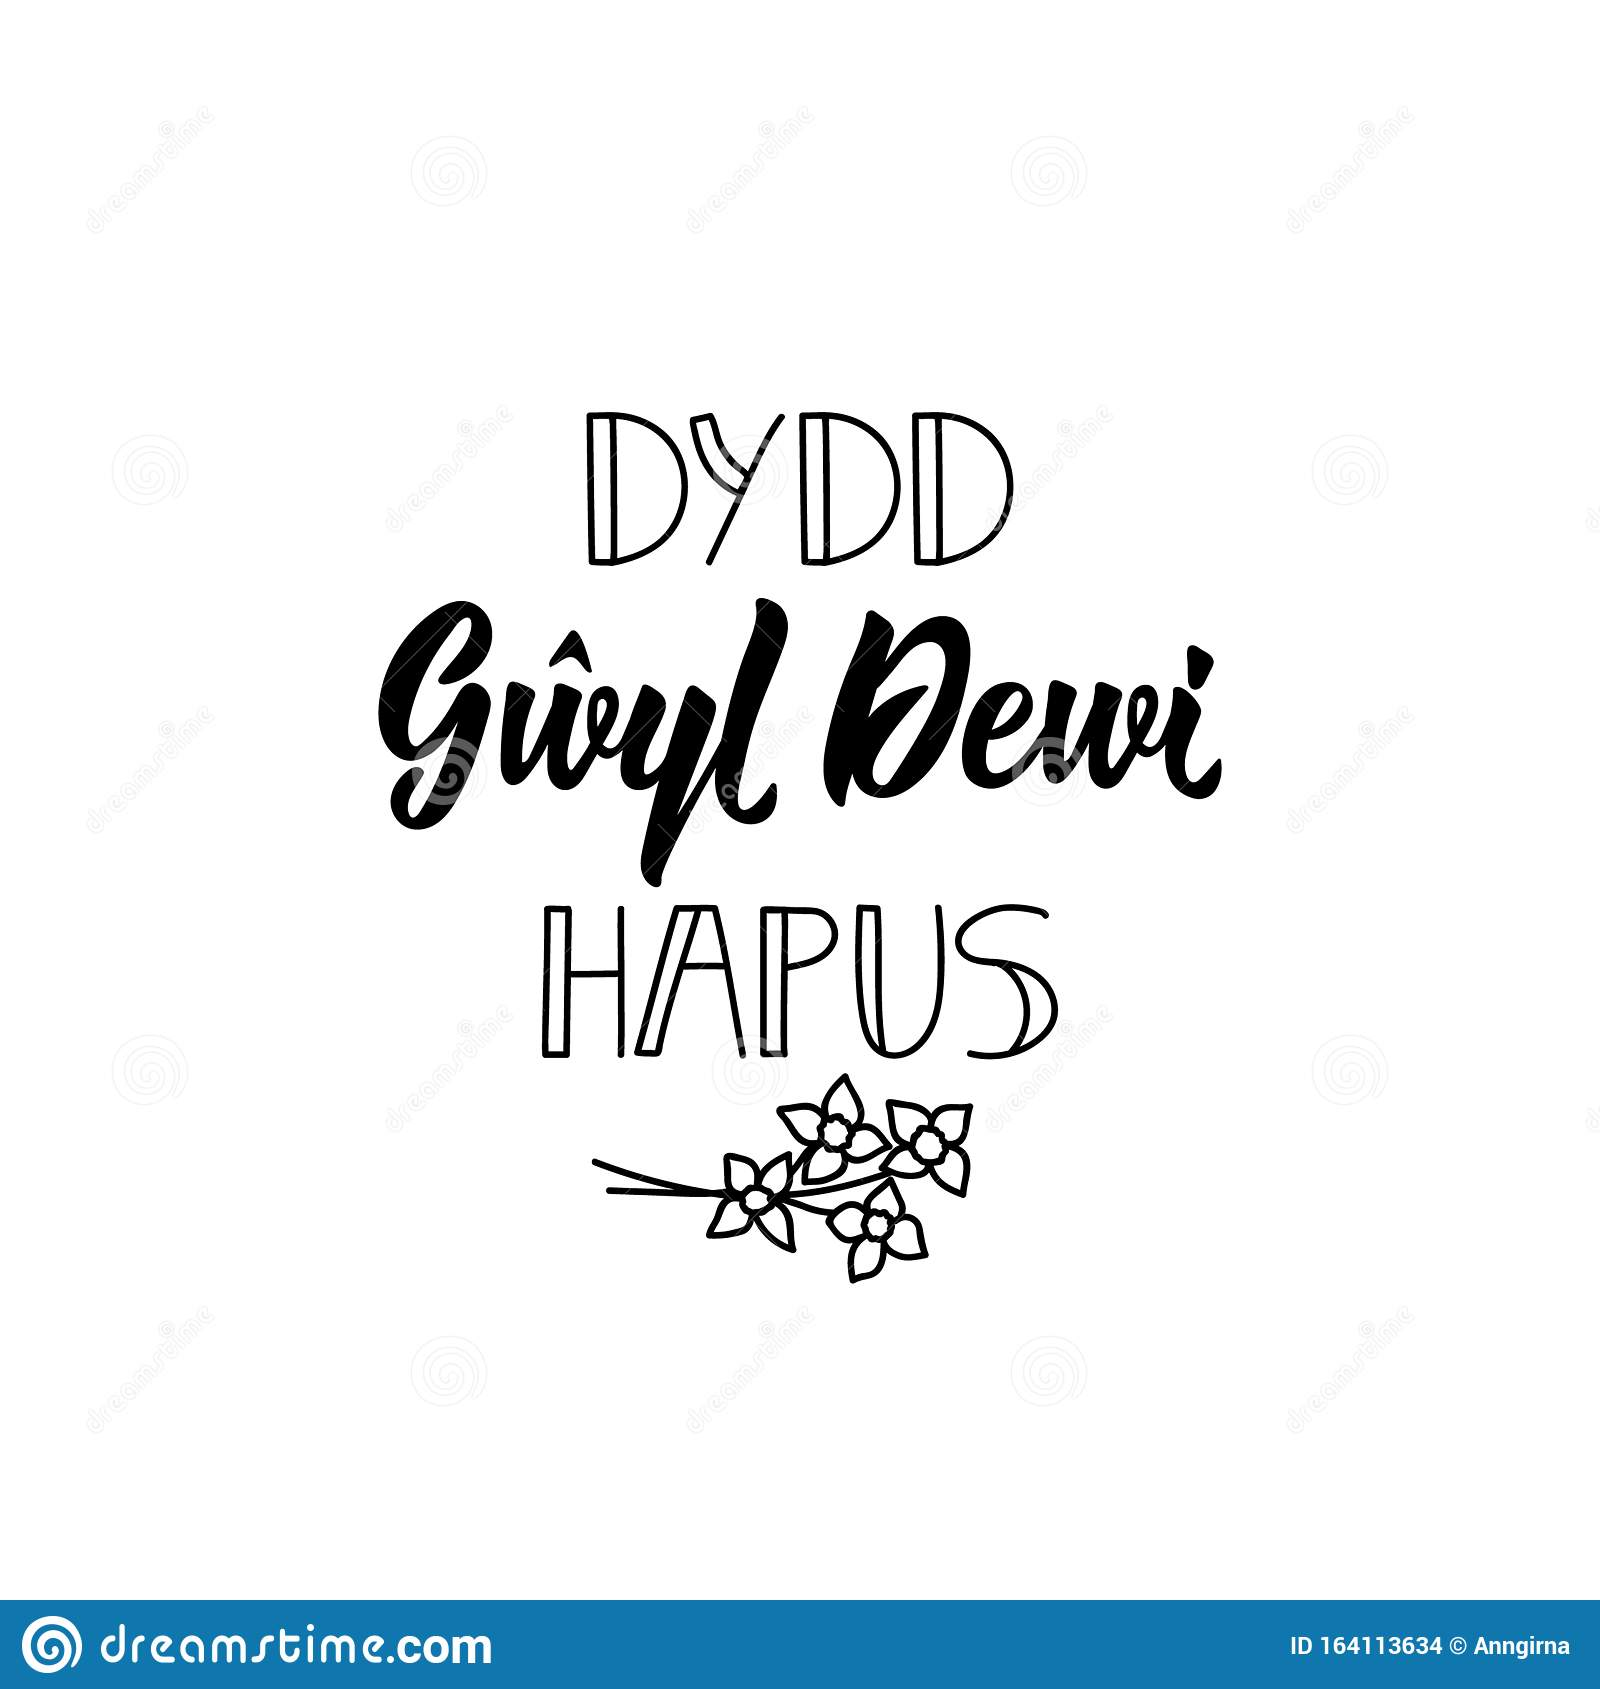 happy st david's day' in welsh - photo #31